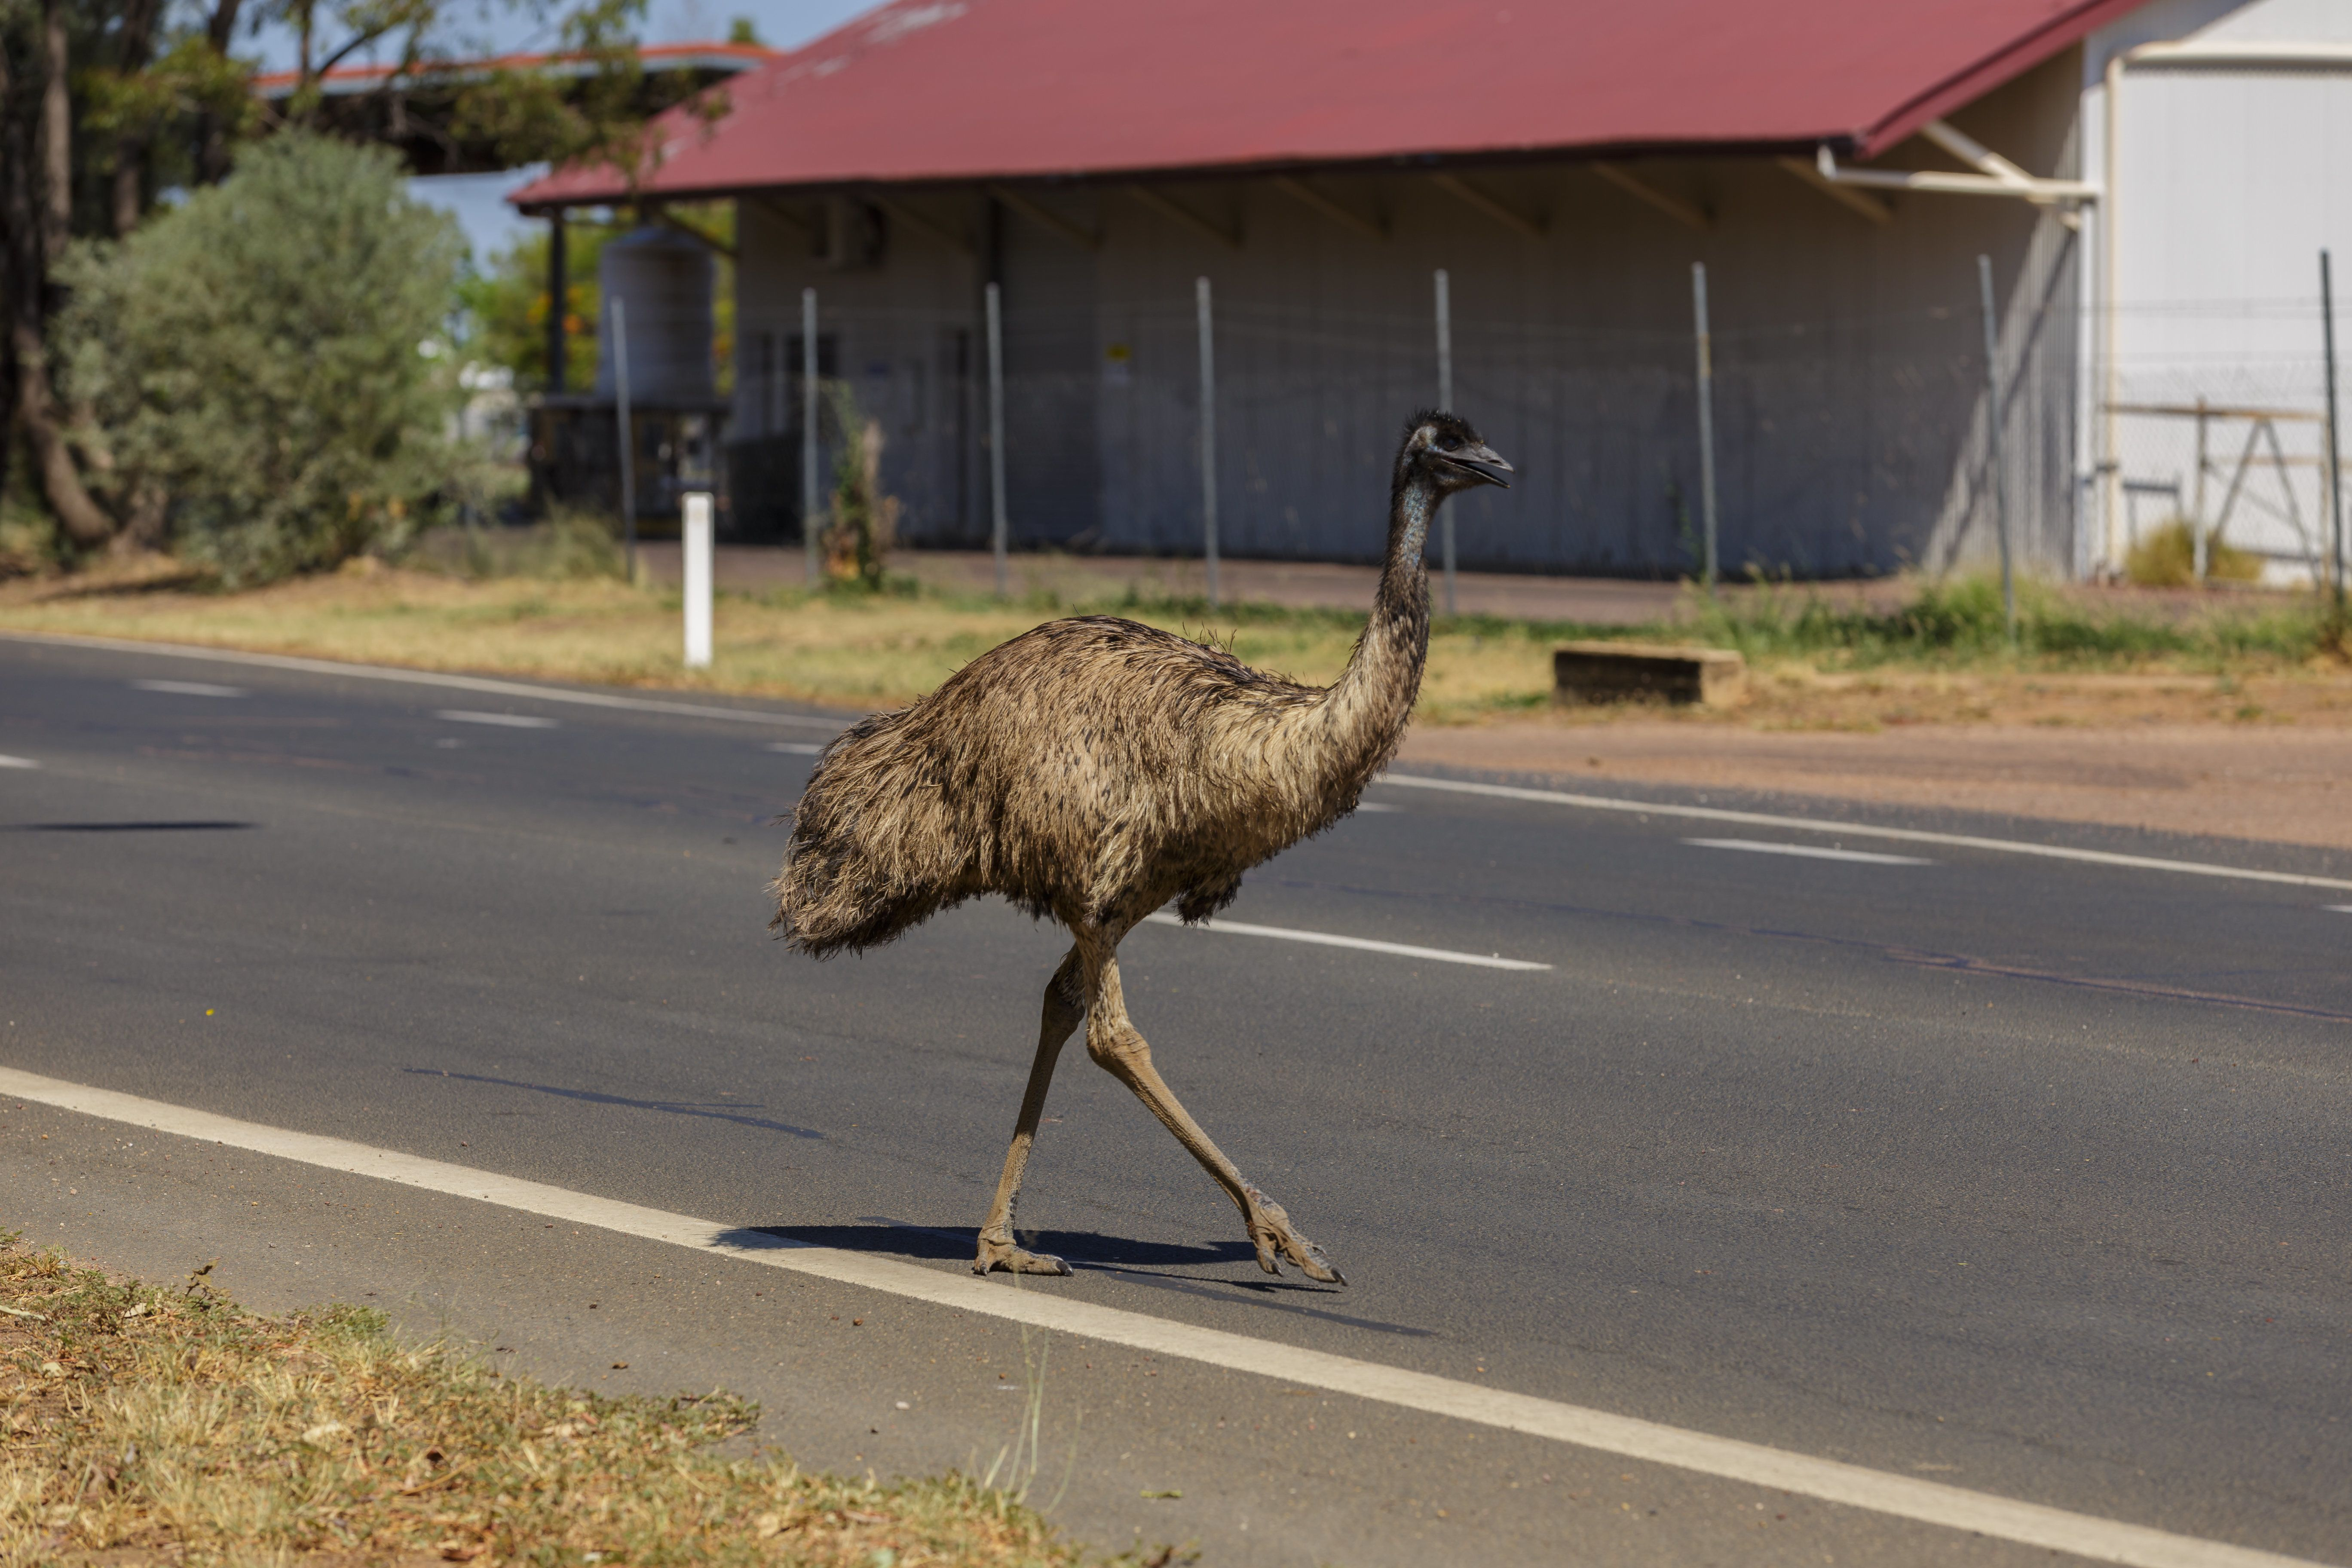 EMUSING: Thirsty Emus Have 'Mobbed' This Australian Town Following